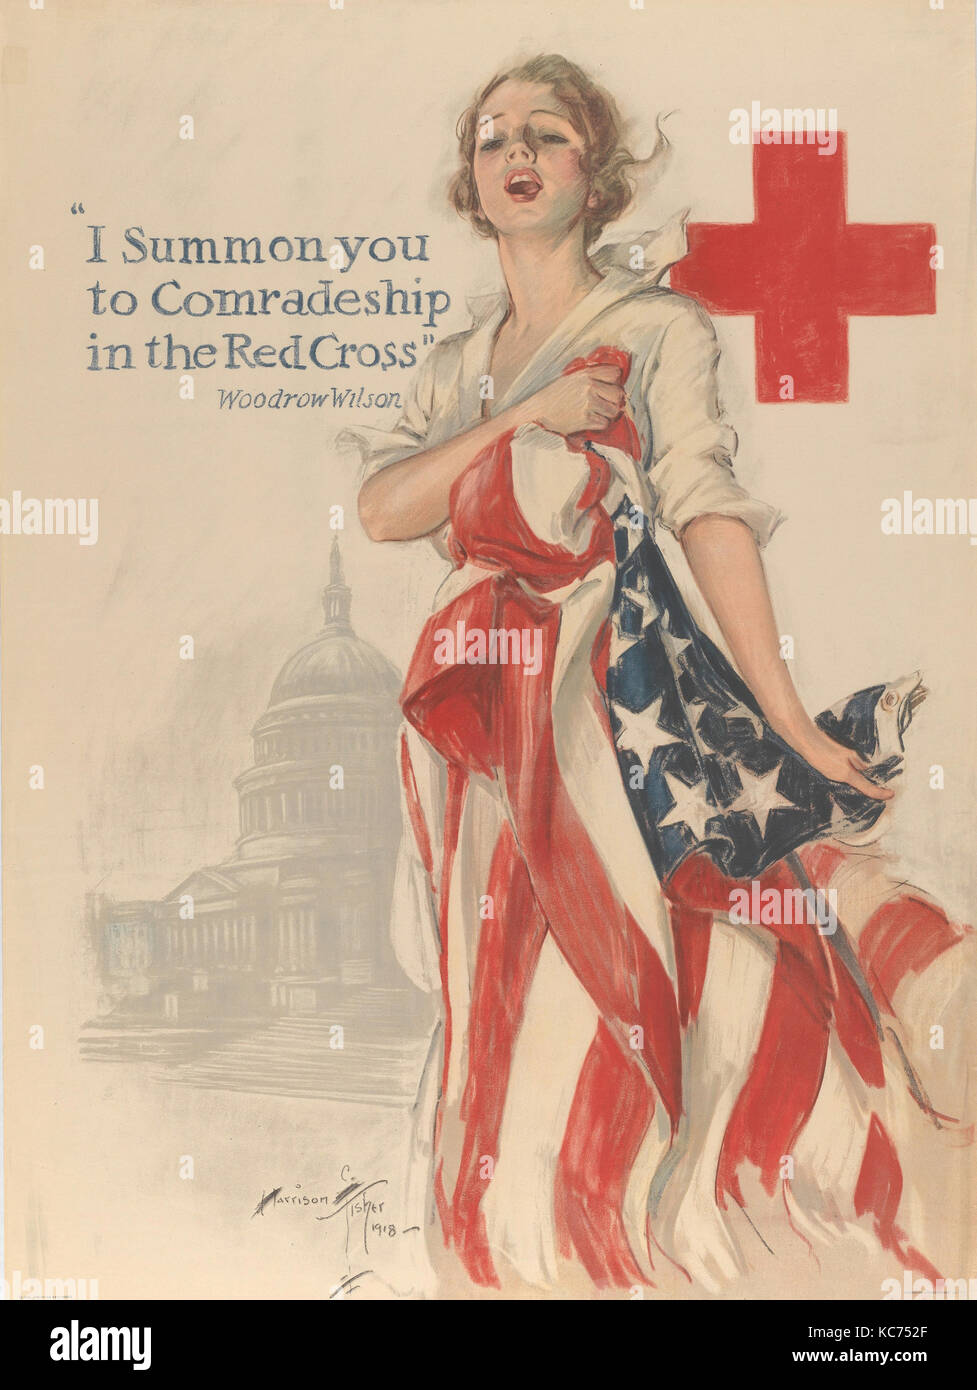 I Summon You to Comradeship in the Red Cross, Harrison Fisher, 1918 - Stock Image